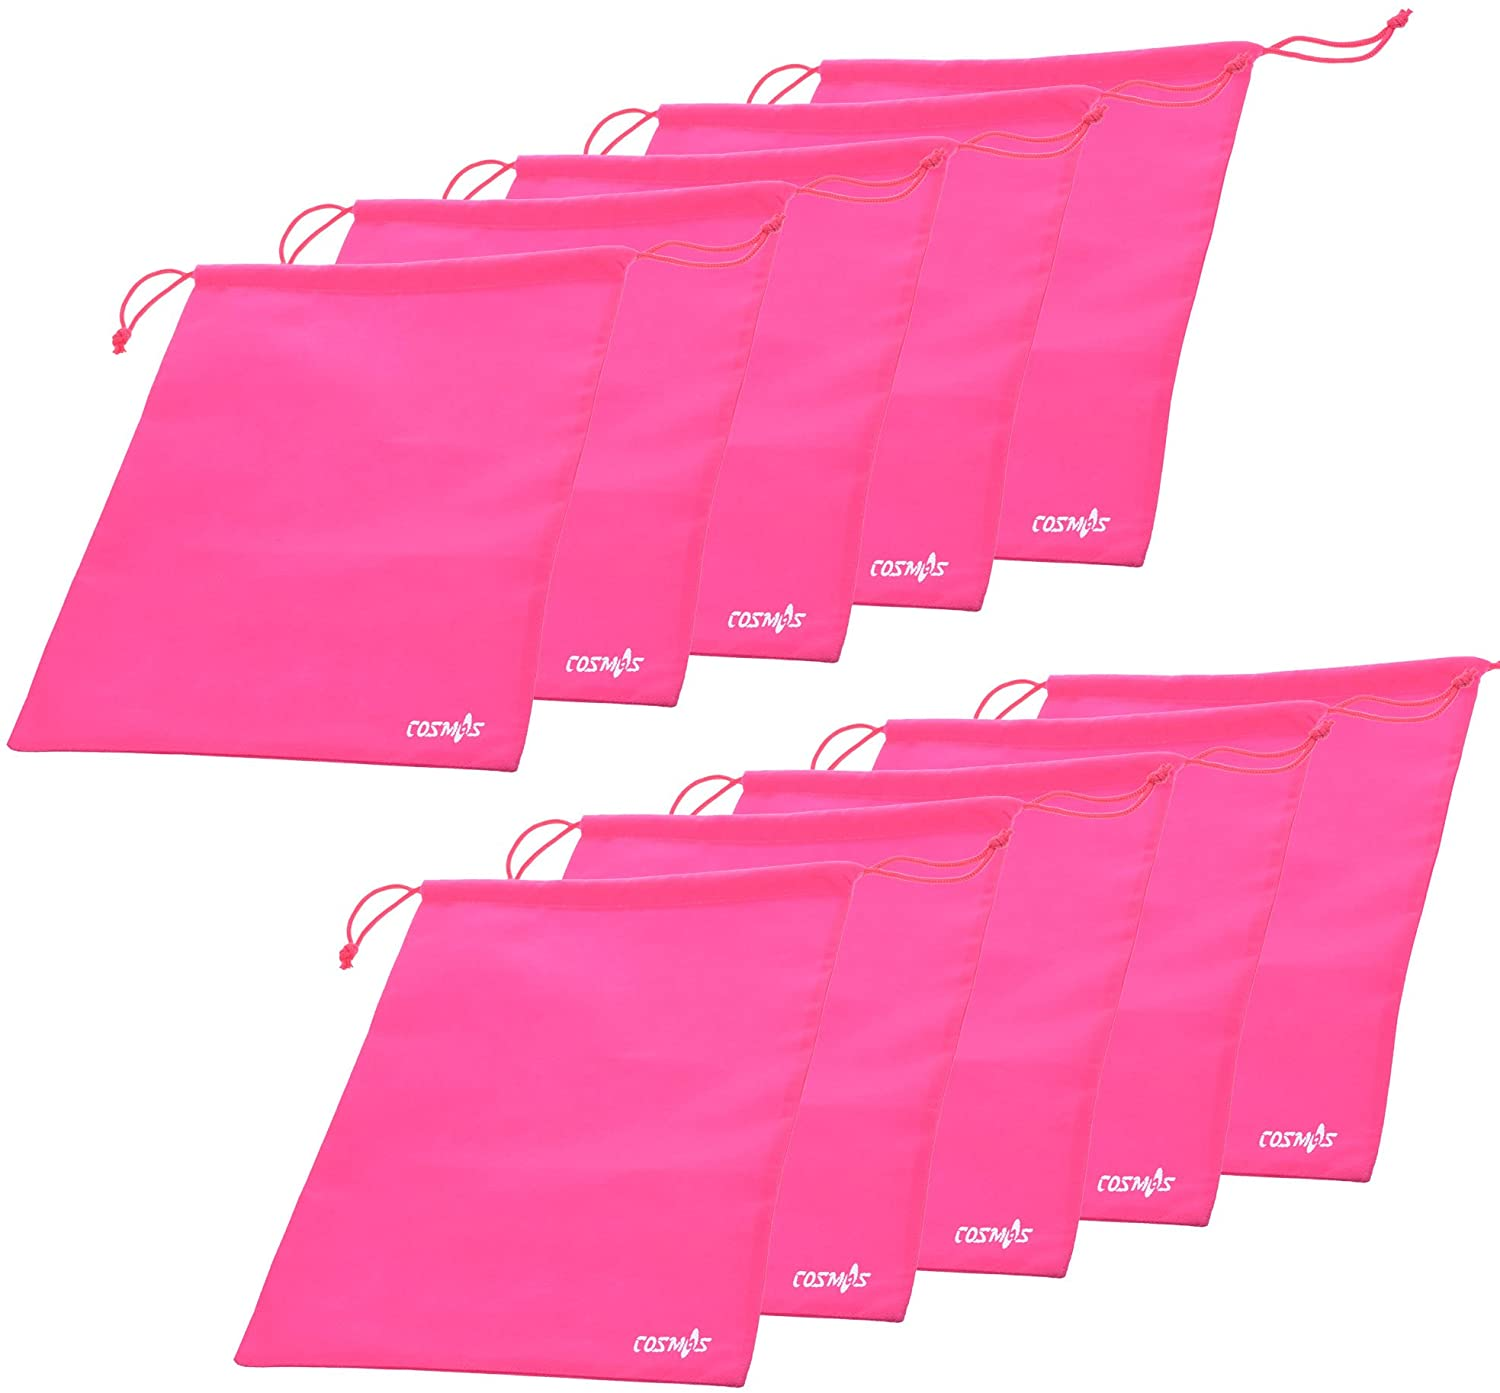 Cosmos 10 Pcs Women's Hot Pink Non-Woven Drawstring Shoe Bags for Travel Carrying, 13-3/4 x 11 Inches